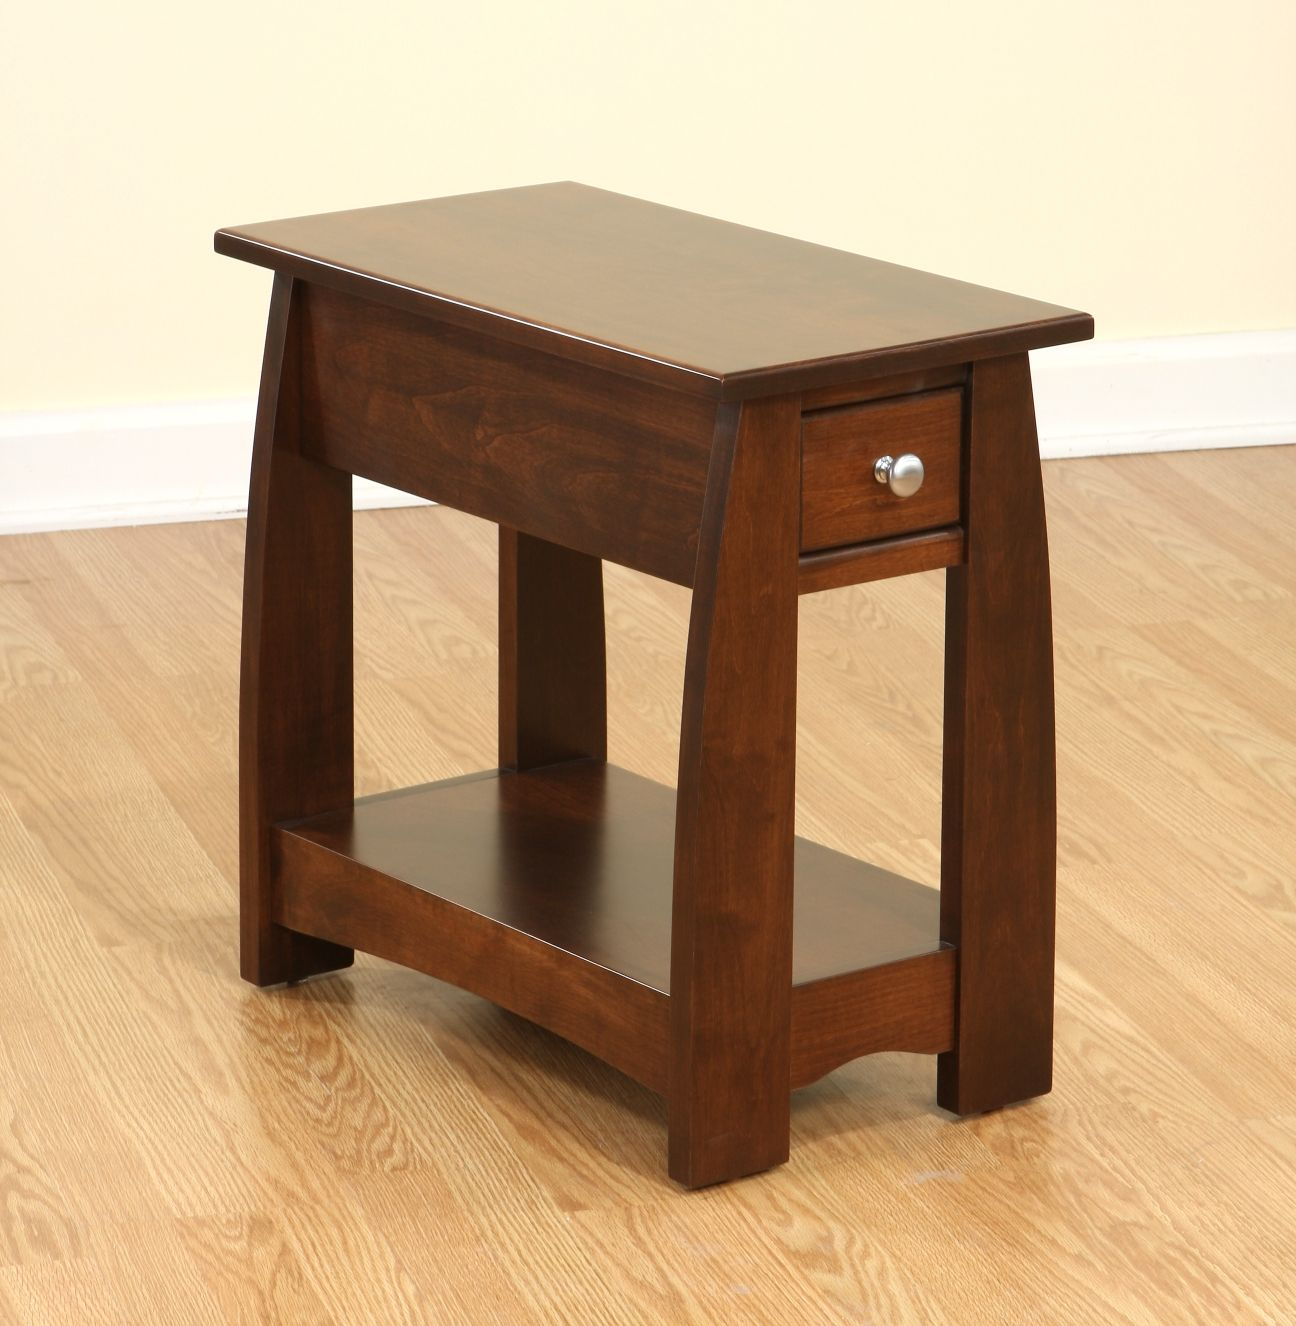 sonoma solid cherry wood narrow end table amish furniture tables mission shaker chicago area contemporary with drawers cute dog crates black chairs kmart french style coffee and